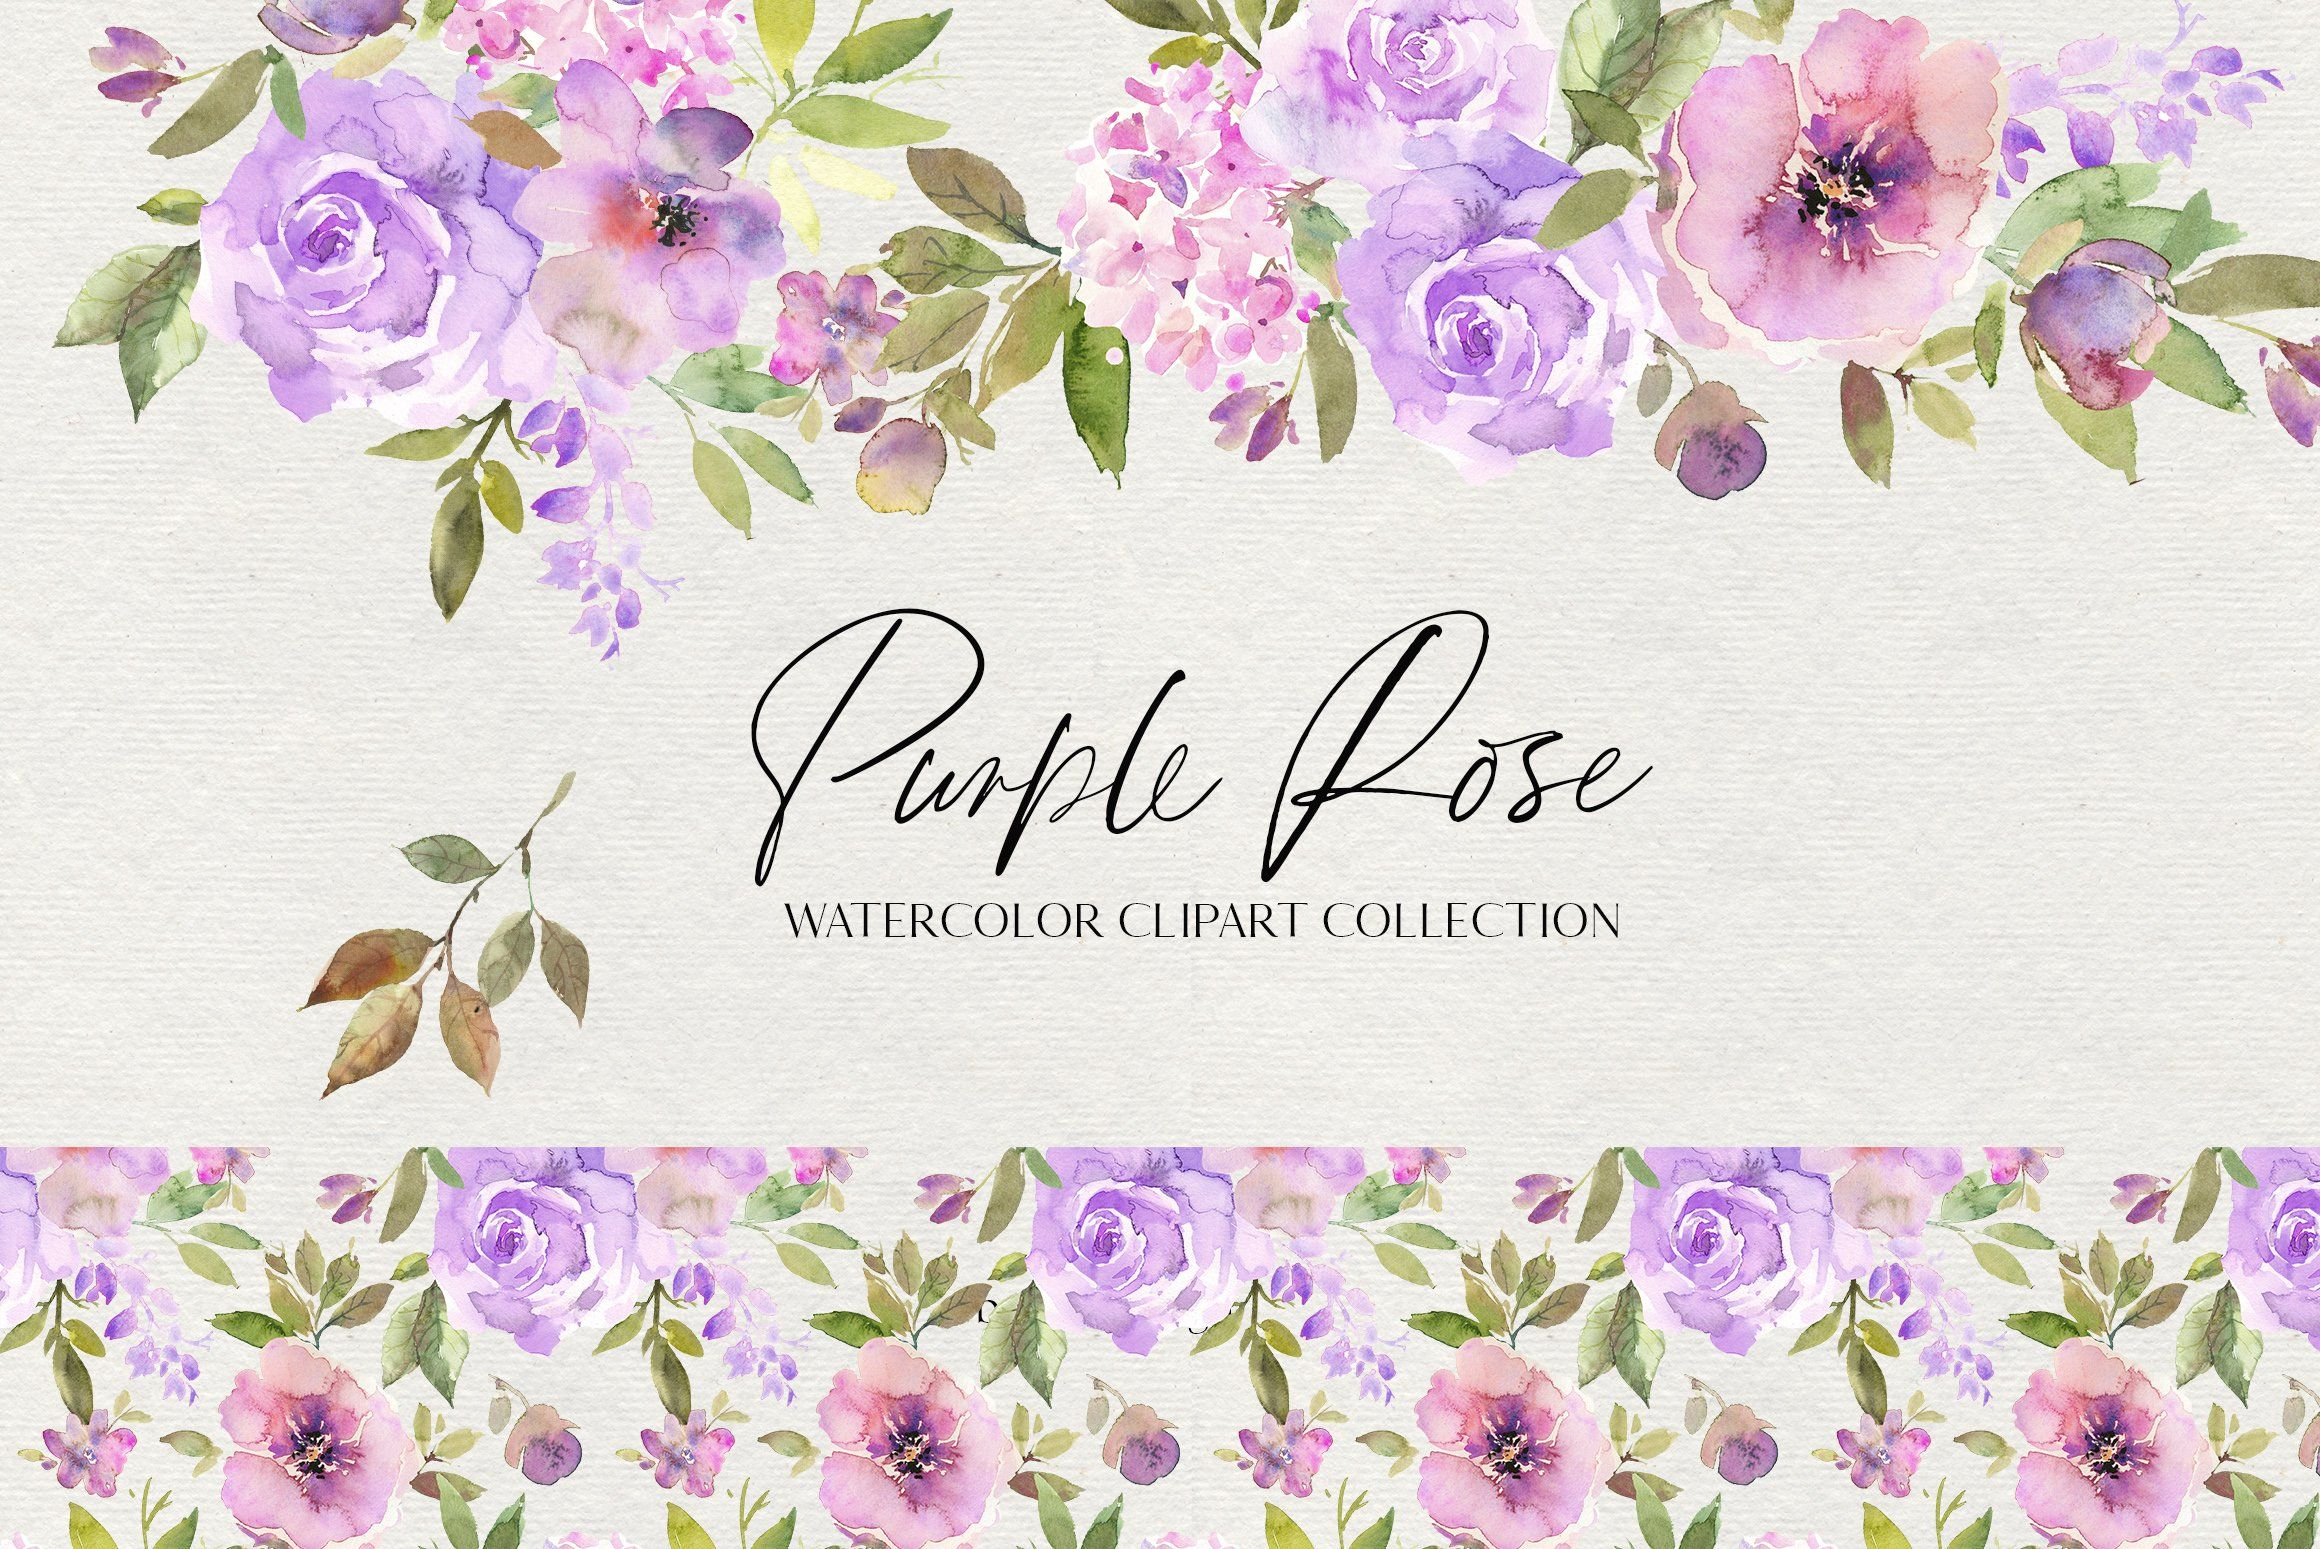 Purple Rose Watercolor Flowers Png Watercolor Rose Watercolor